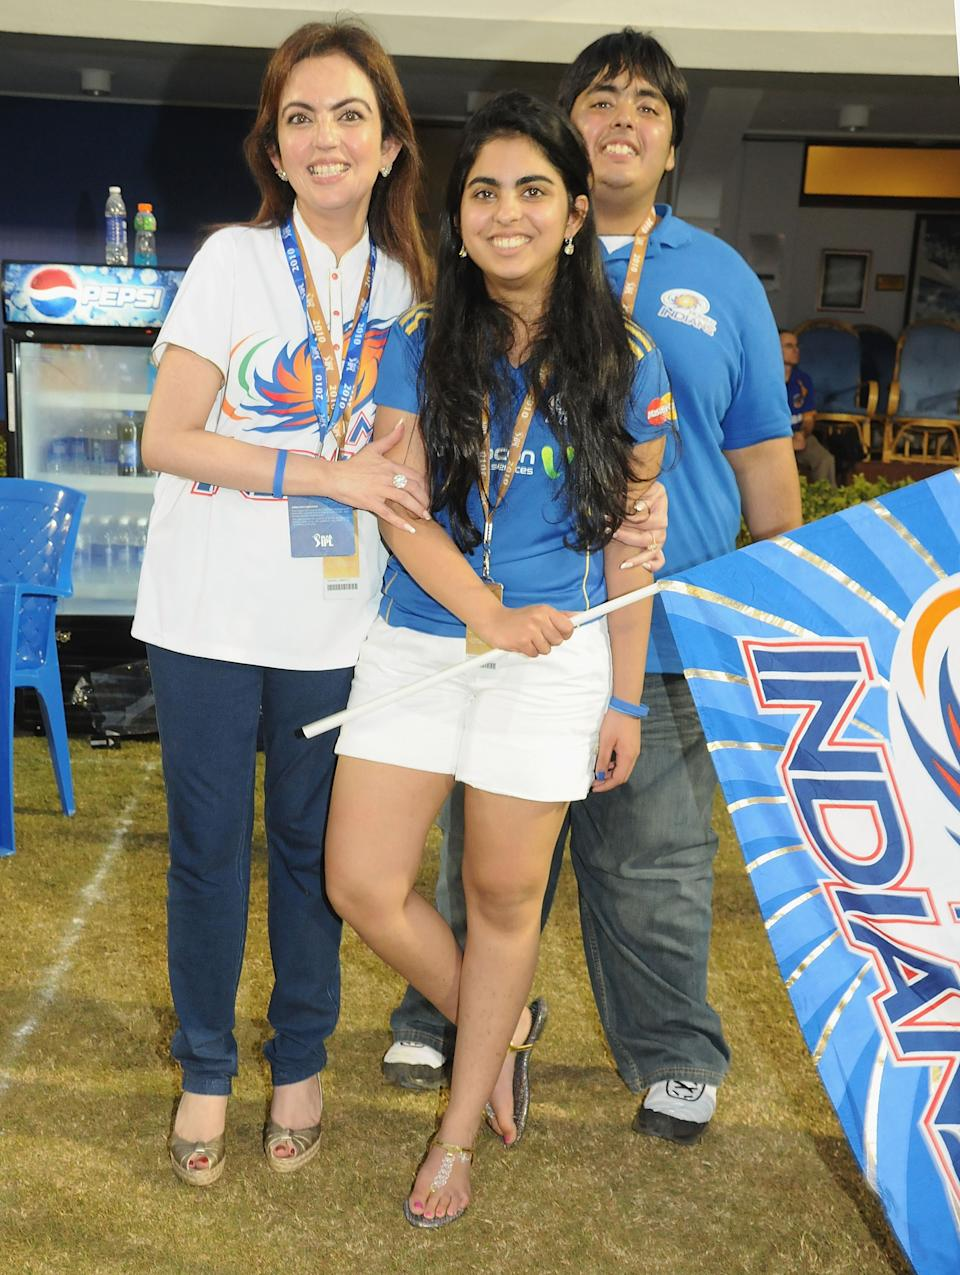 Exclusive MUMBAI, INDIA - MARCH 13:Owner of Mumbai Indians Nita Ambani,Esha Ambani,Anant Ambani after after victory during the 2010 DLF Indian Premier League T20 group stage match between the Mumbai Indians and the Rajasthan Royals played at Brabourne Stadium on March 13, 2010 in Mumbai, India. (Photo by Yogen Shah-IPL 2010/IPL via Getty Images)